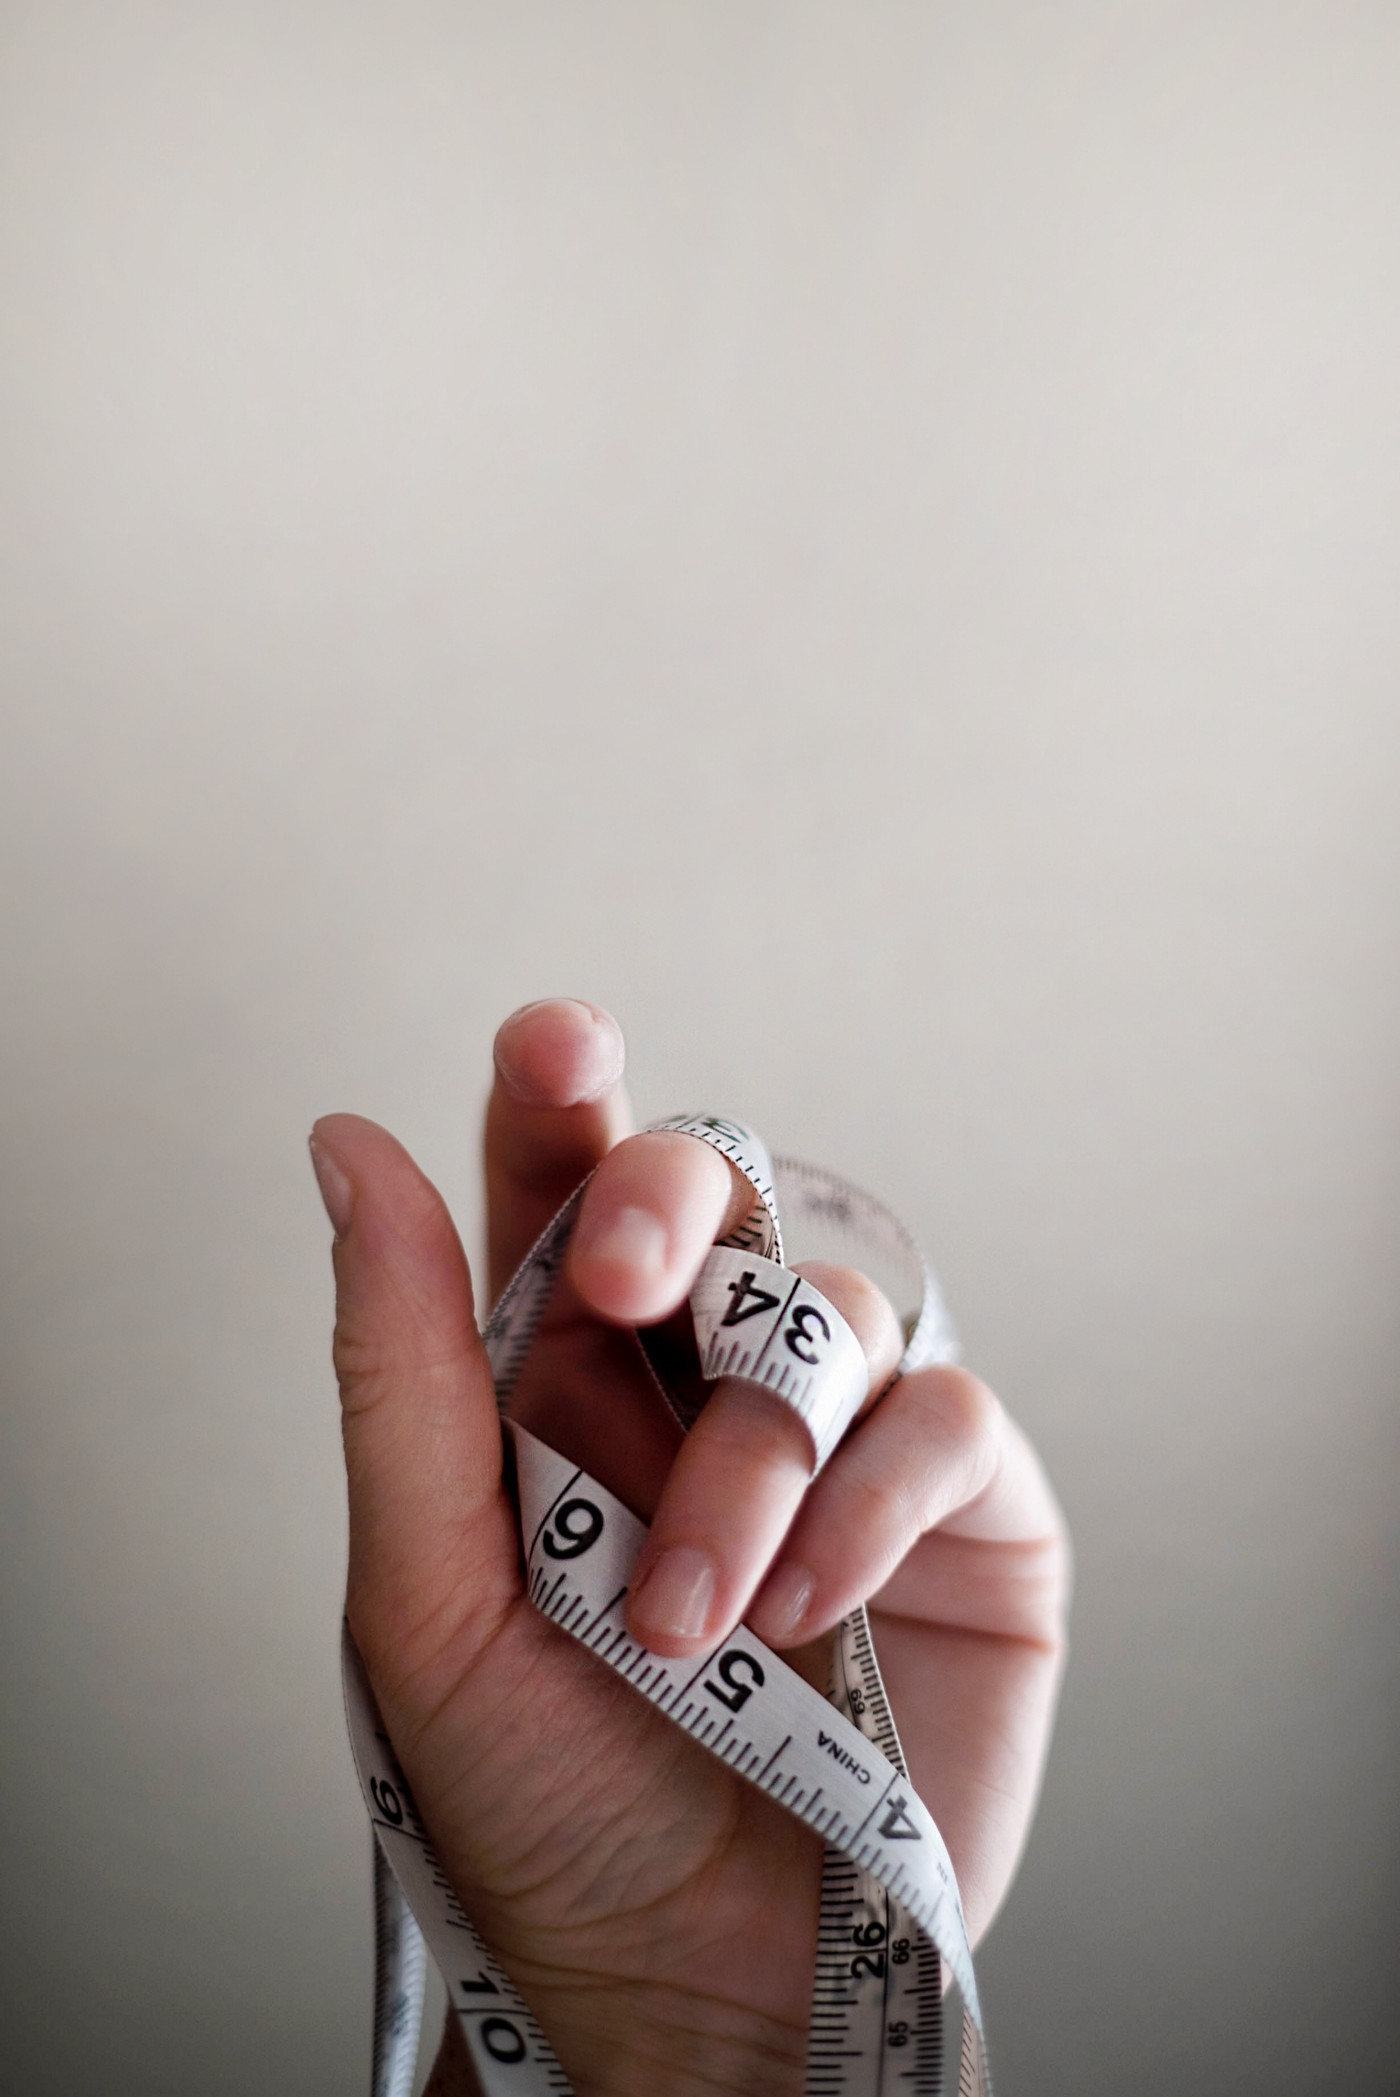 A person's hand holding an etnangled measuring tape in a close up.